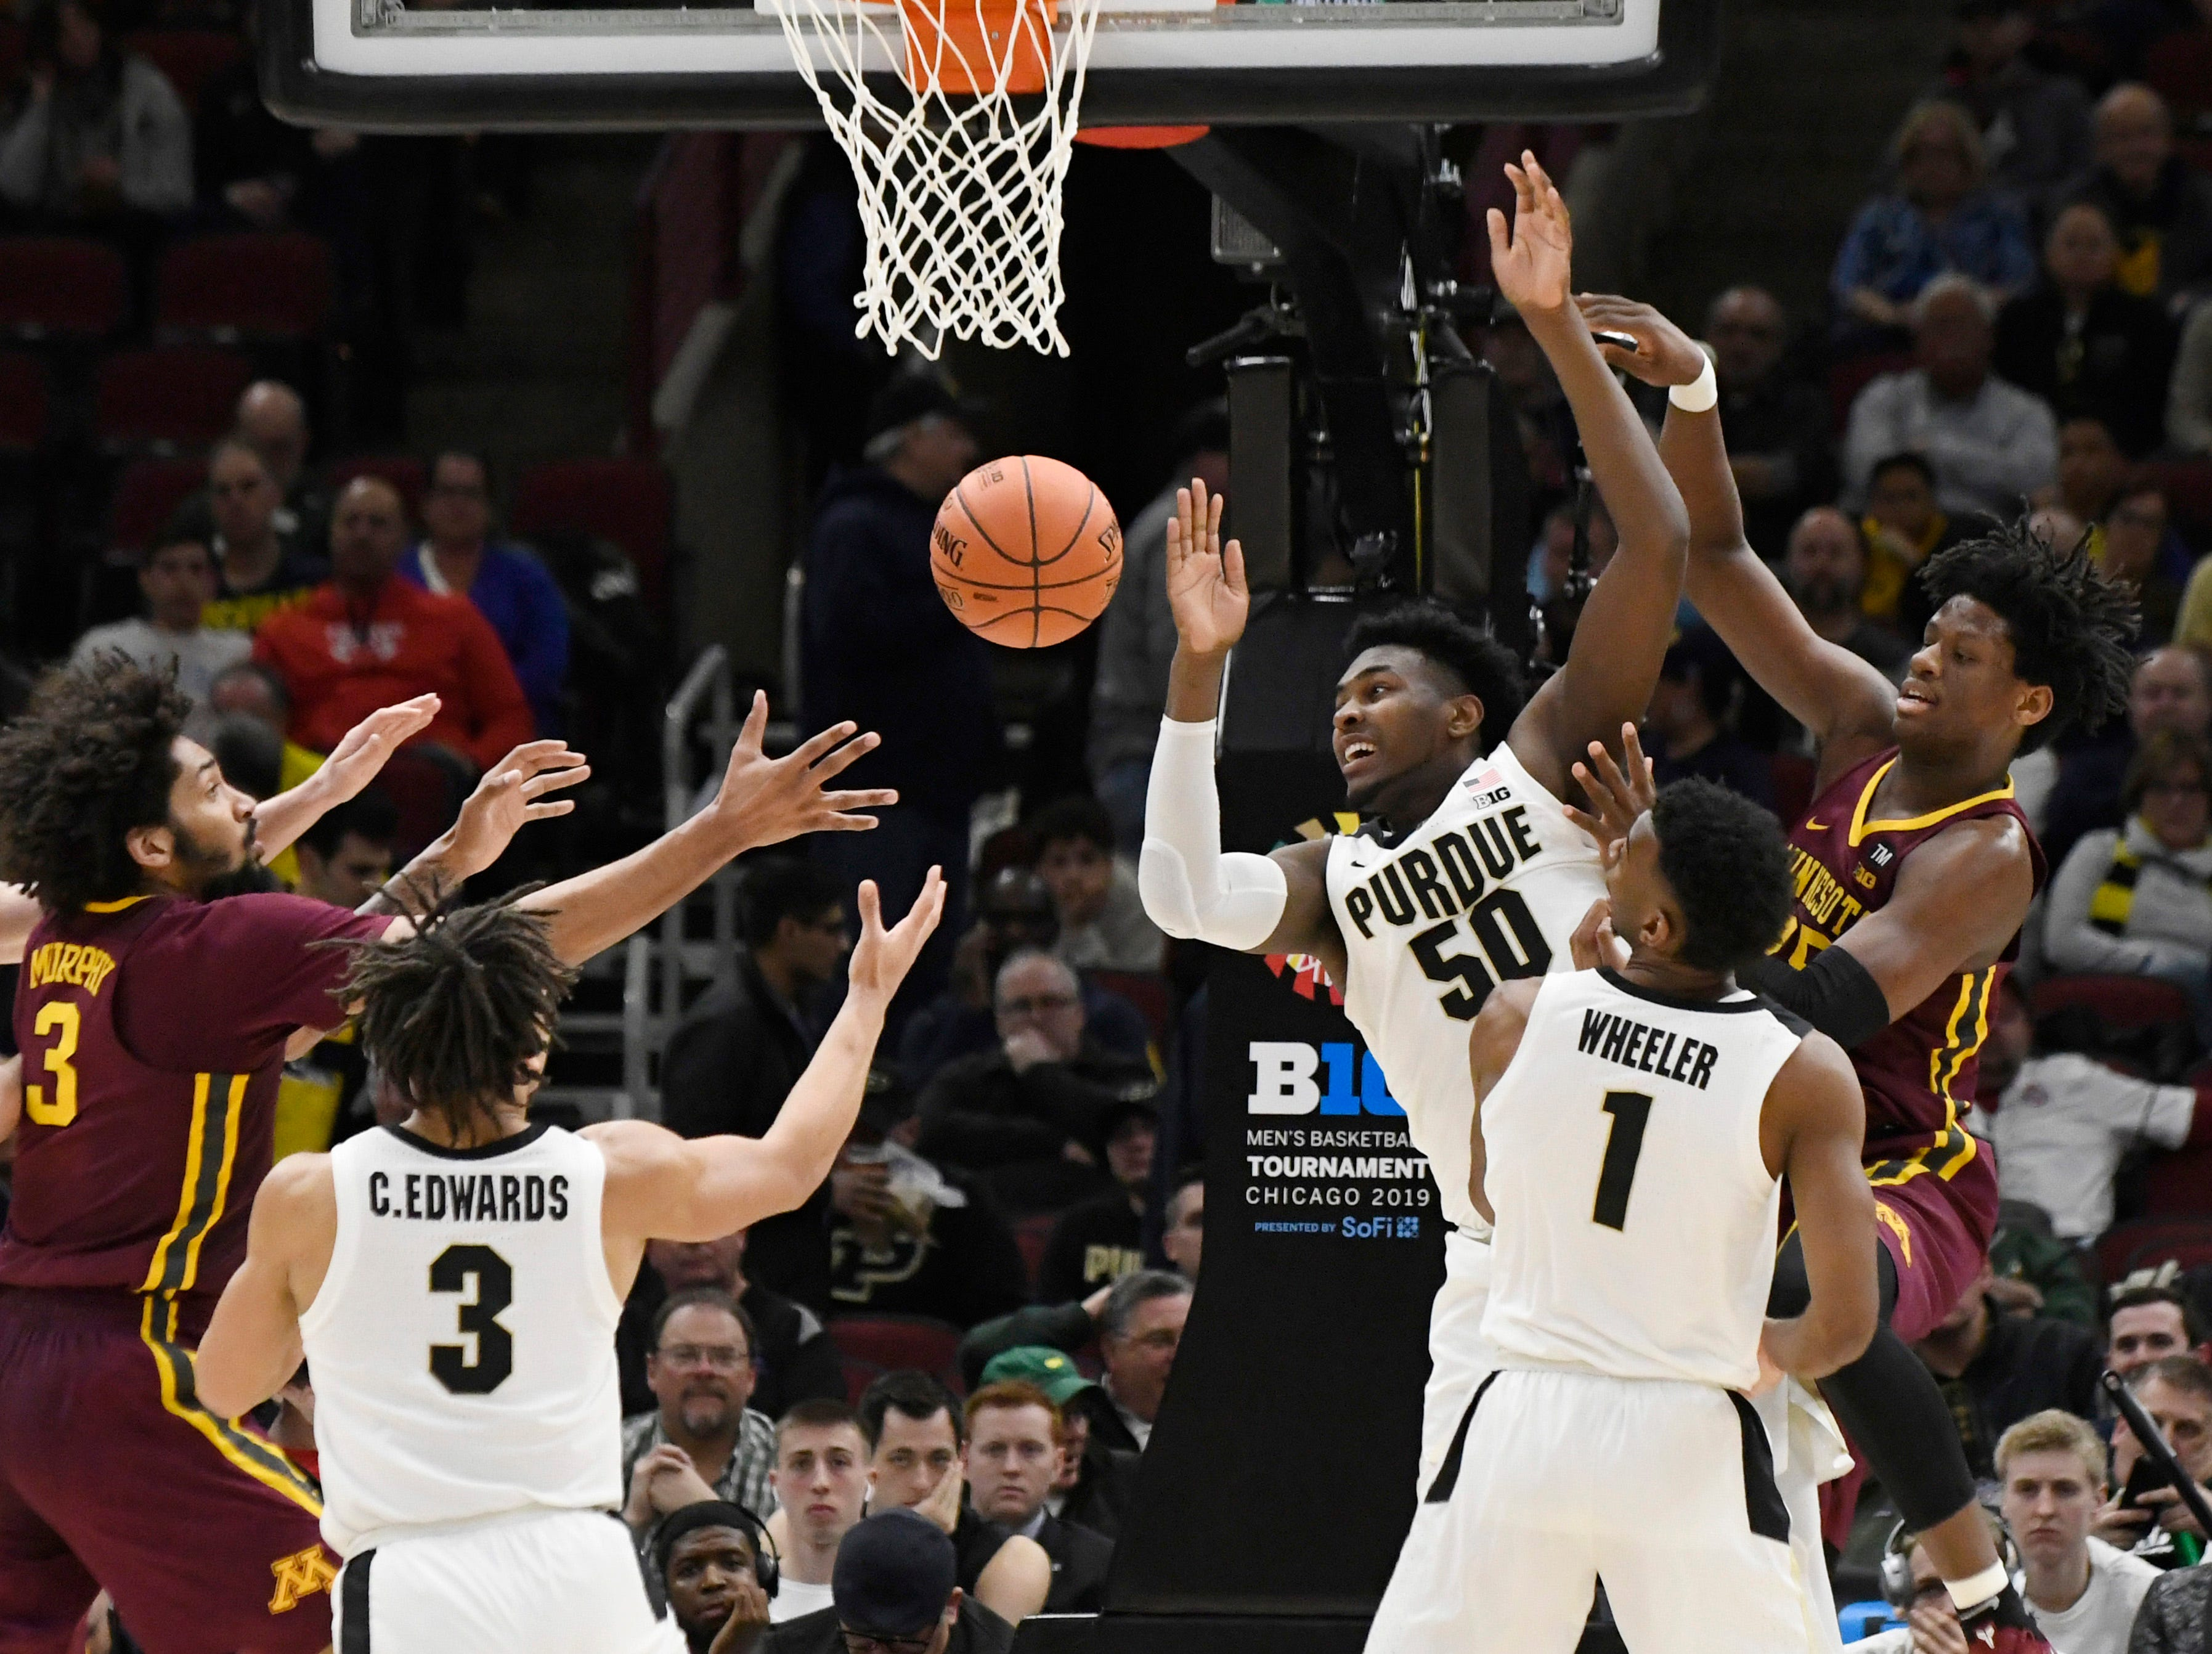 Mar 15, 2019; Chicago, IL, USA; Purdue Boilermakers forward Trevion Williams (50)  jumps for a rebound against the Minnesota Golden Gophers during the second half in the Big Ten conference tournament at United Center. Mandatory Credit: David Banks-USA TODAY Sports